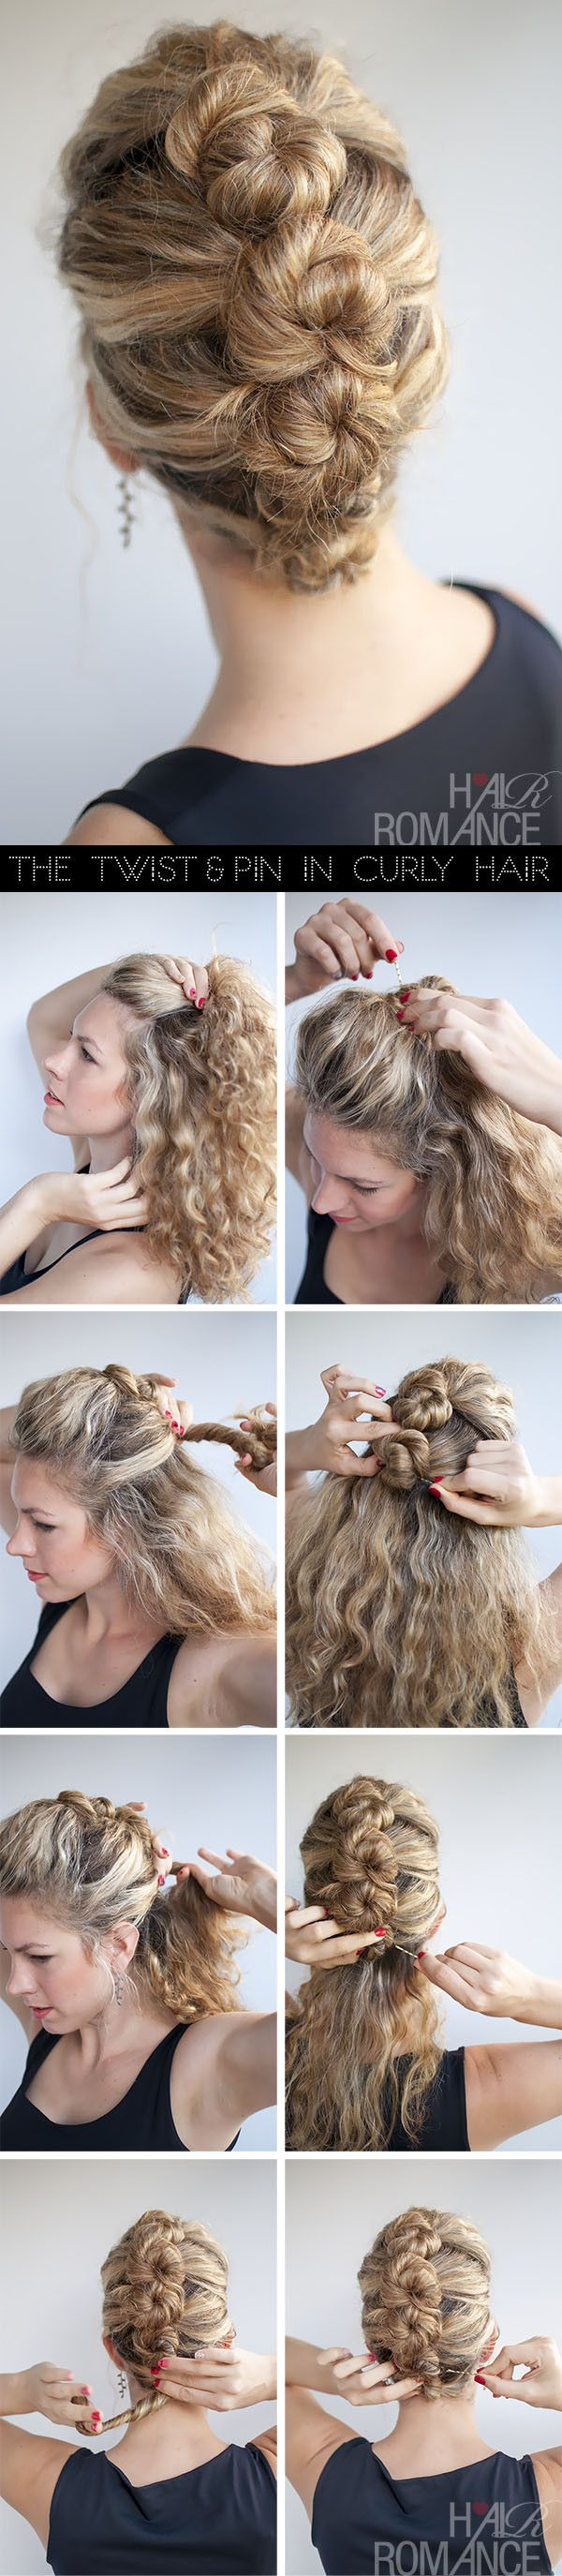 curly hairstyles9